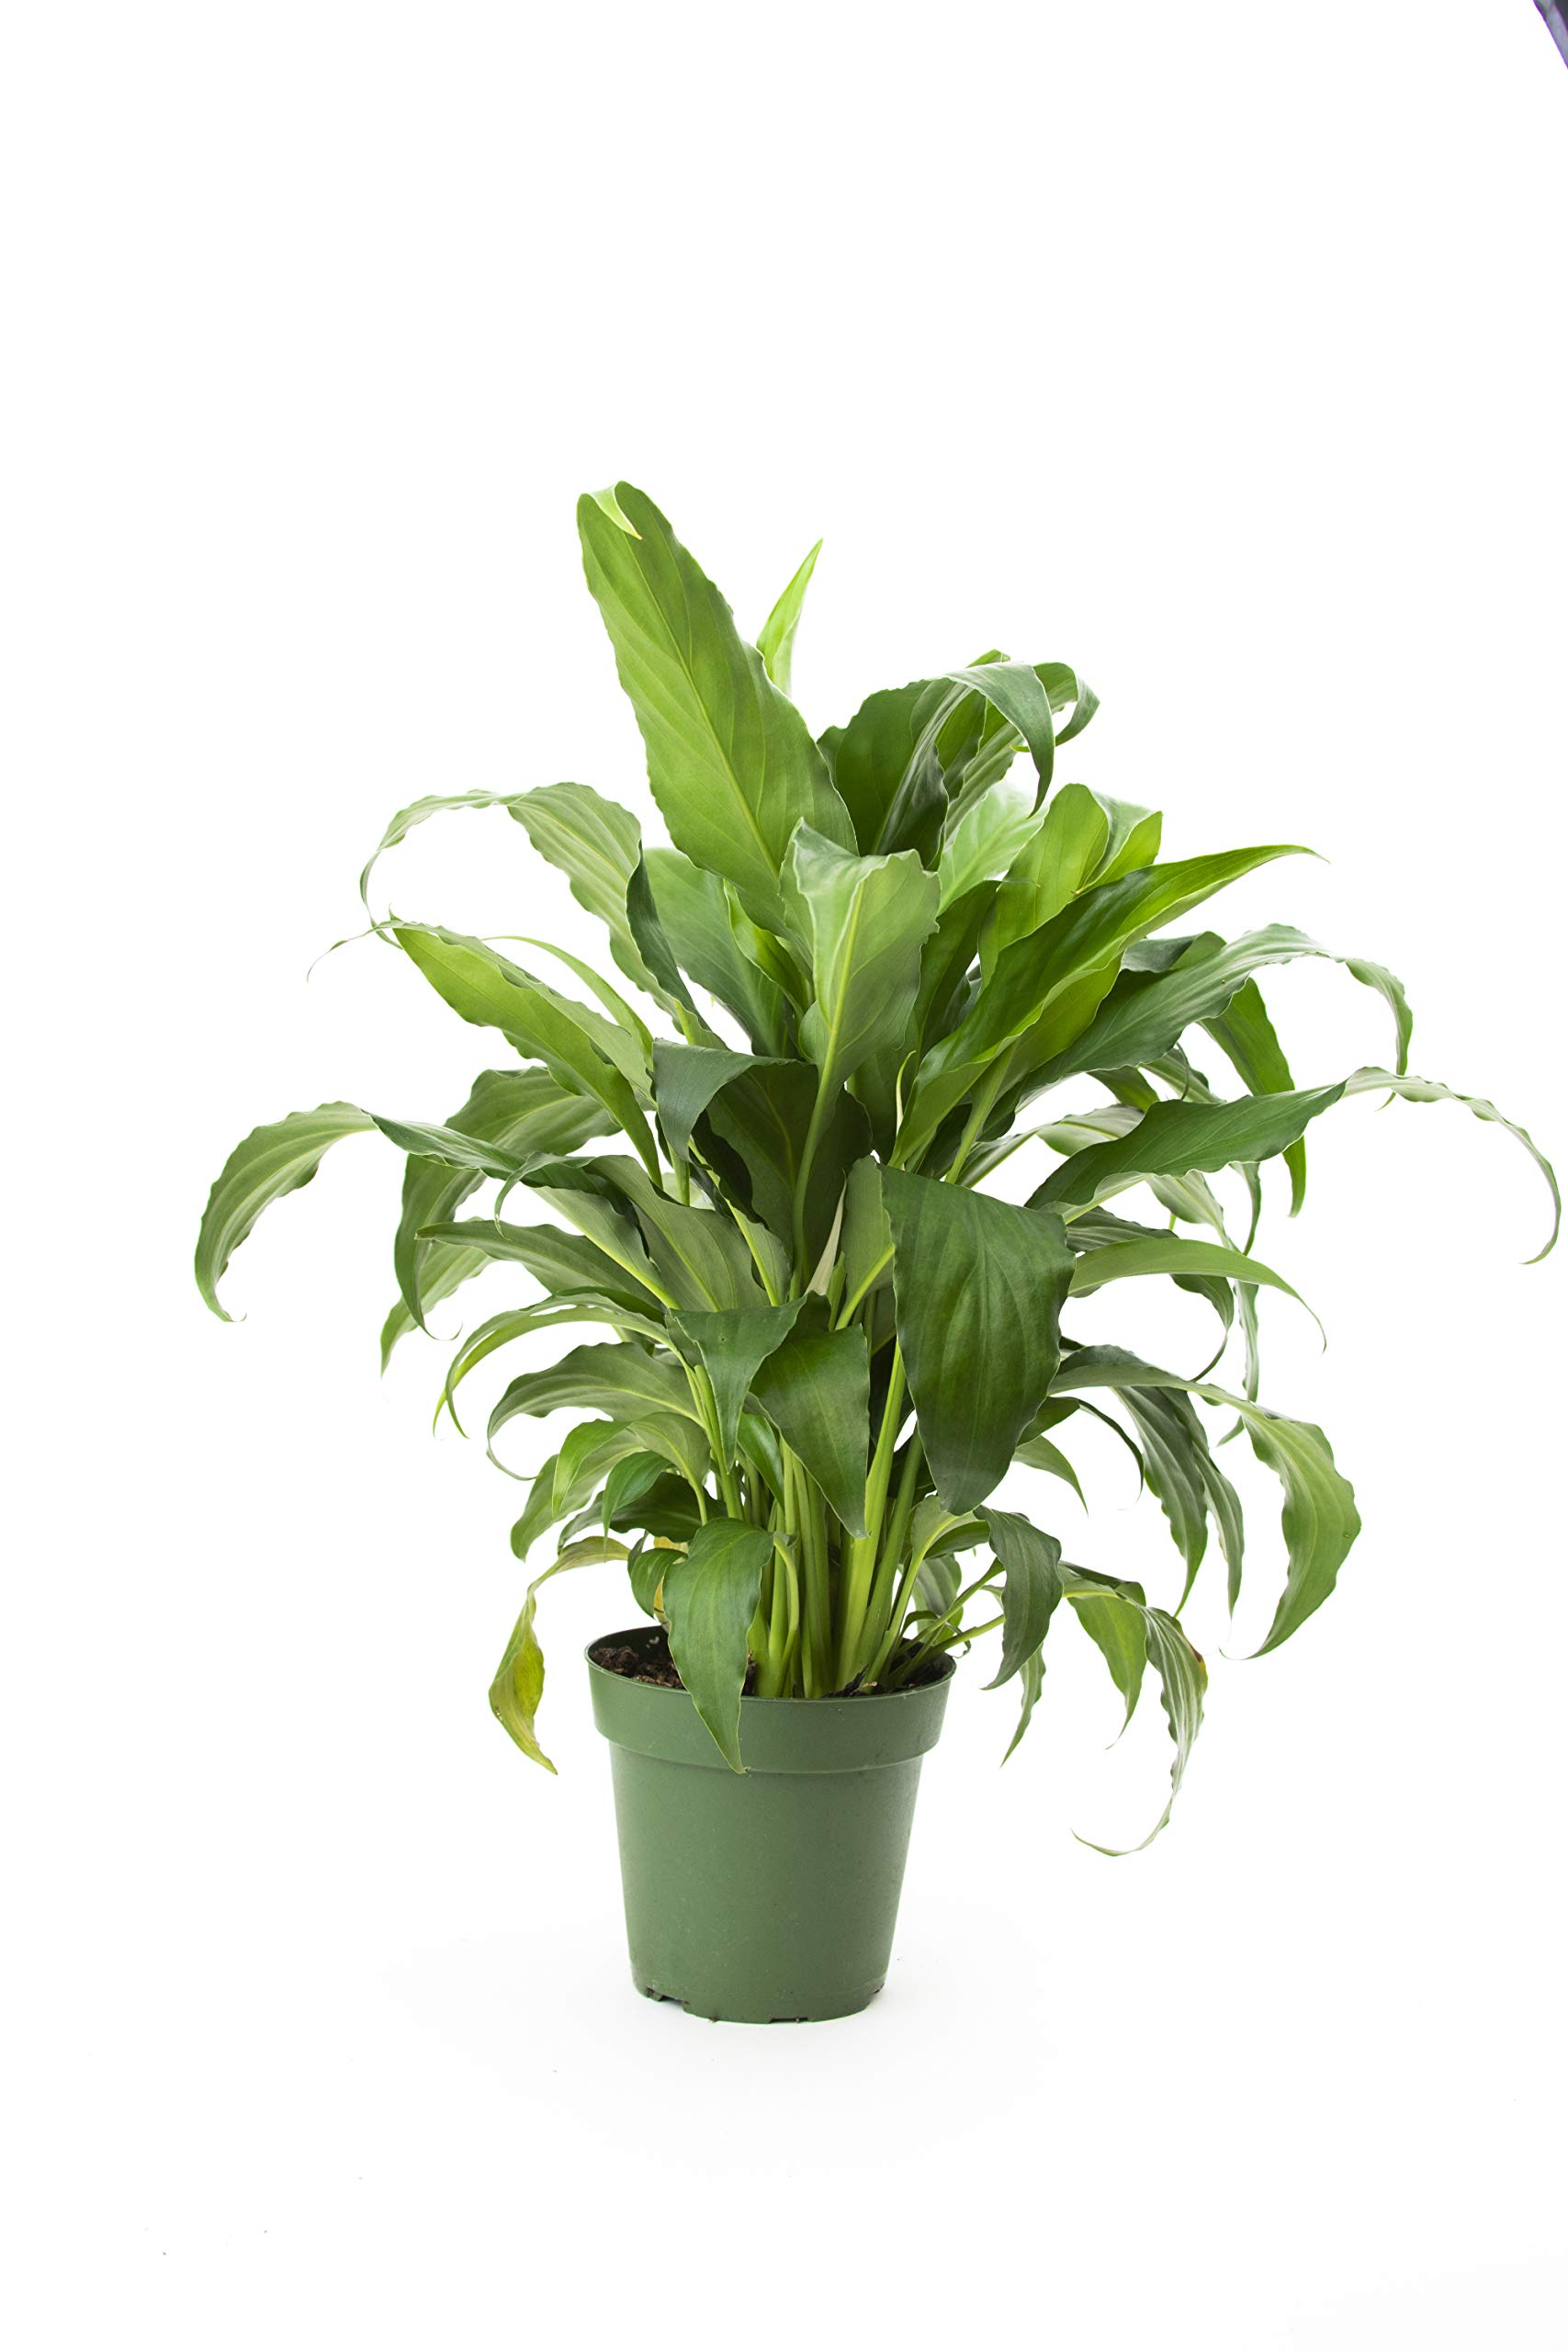 Burpee's 'Sweet Chico' Peace Lily Spathiphyllum | Indirect High Light, Easy Care House Plant | 4'' Pot